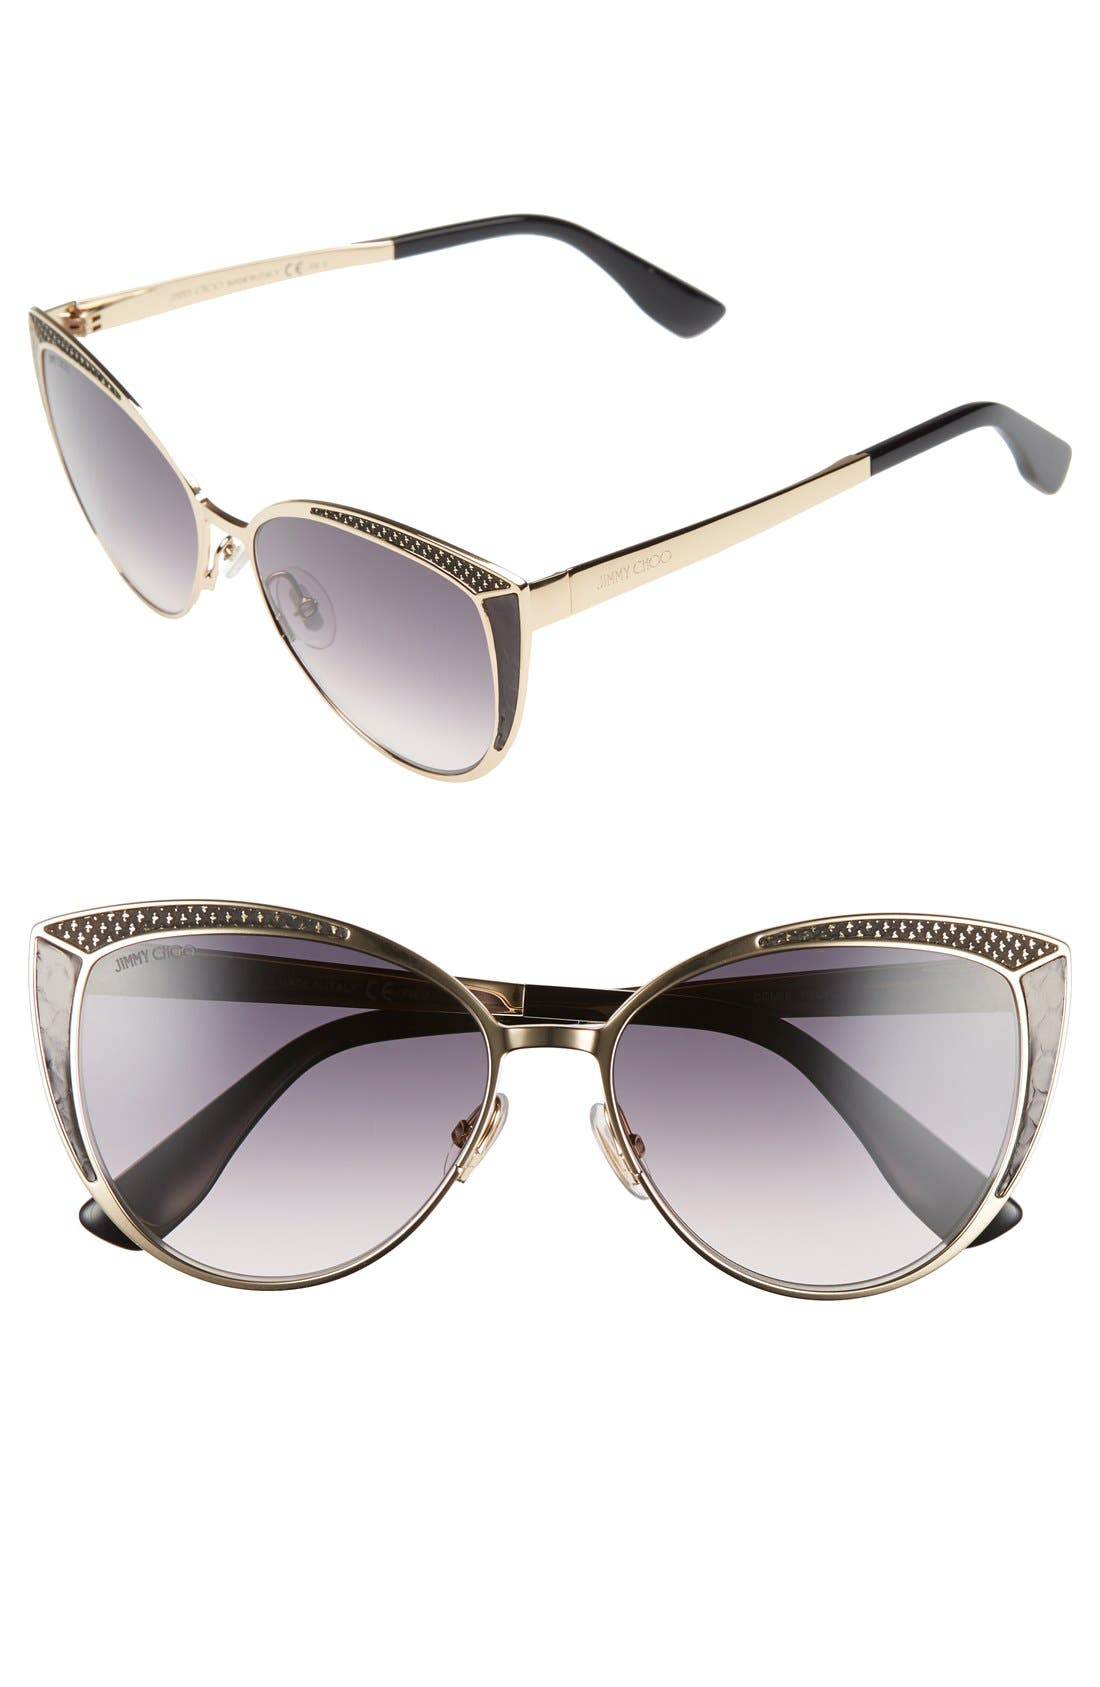 Main Image - Jimmy Choo 56mm Cat Eye Sunglasses